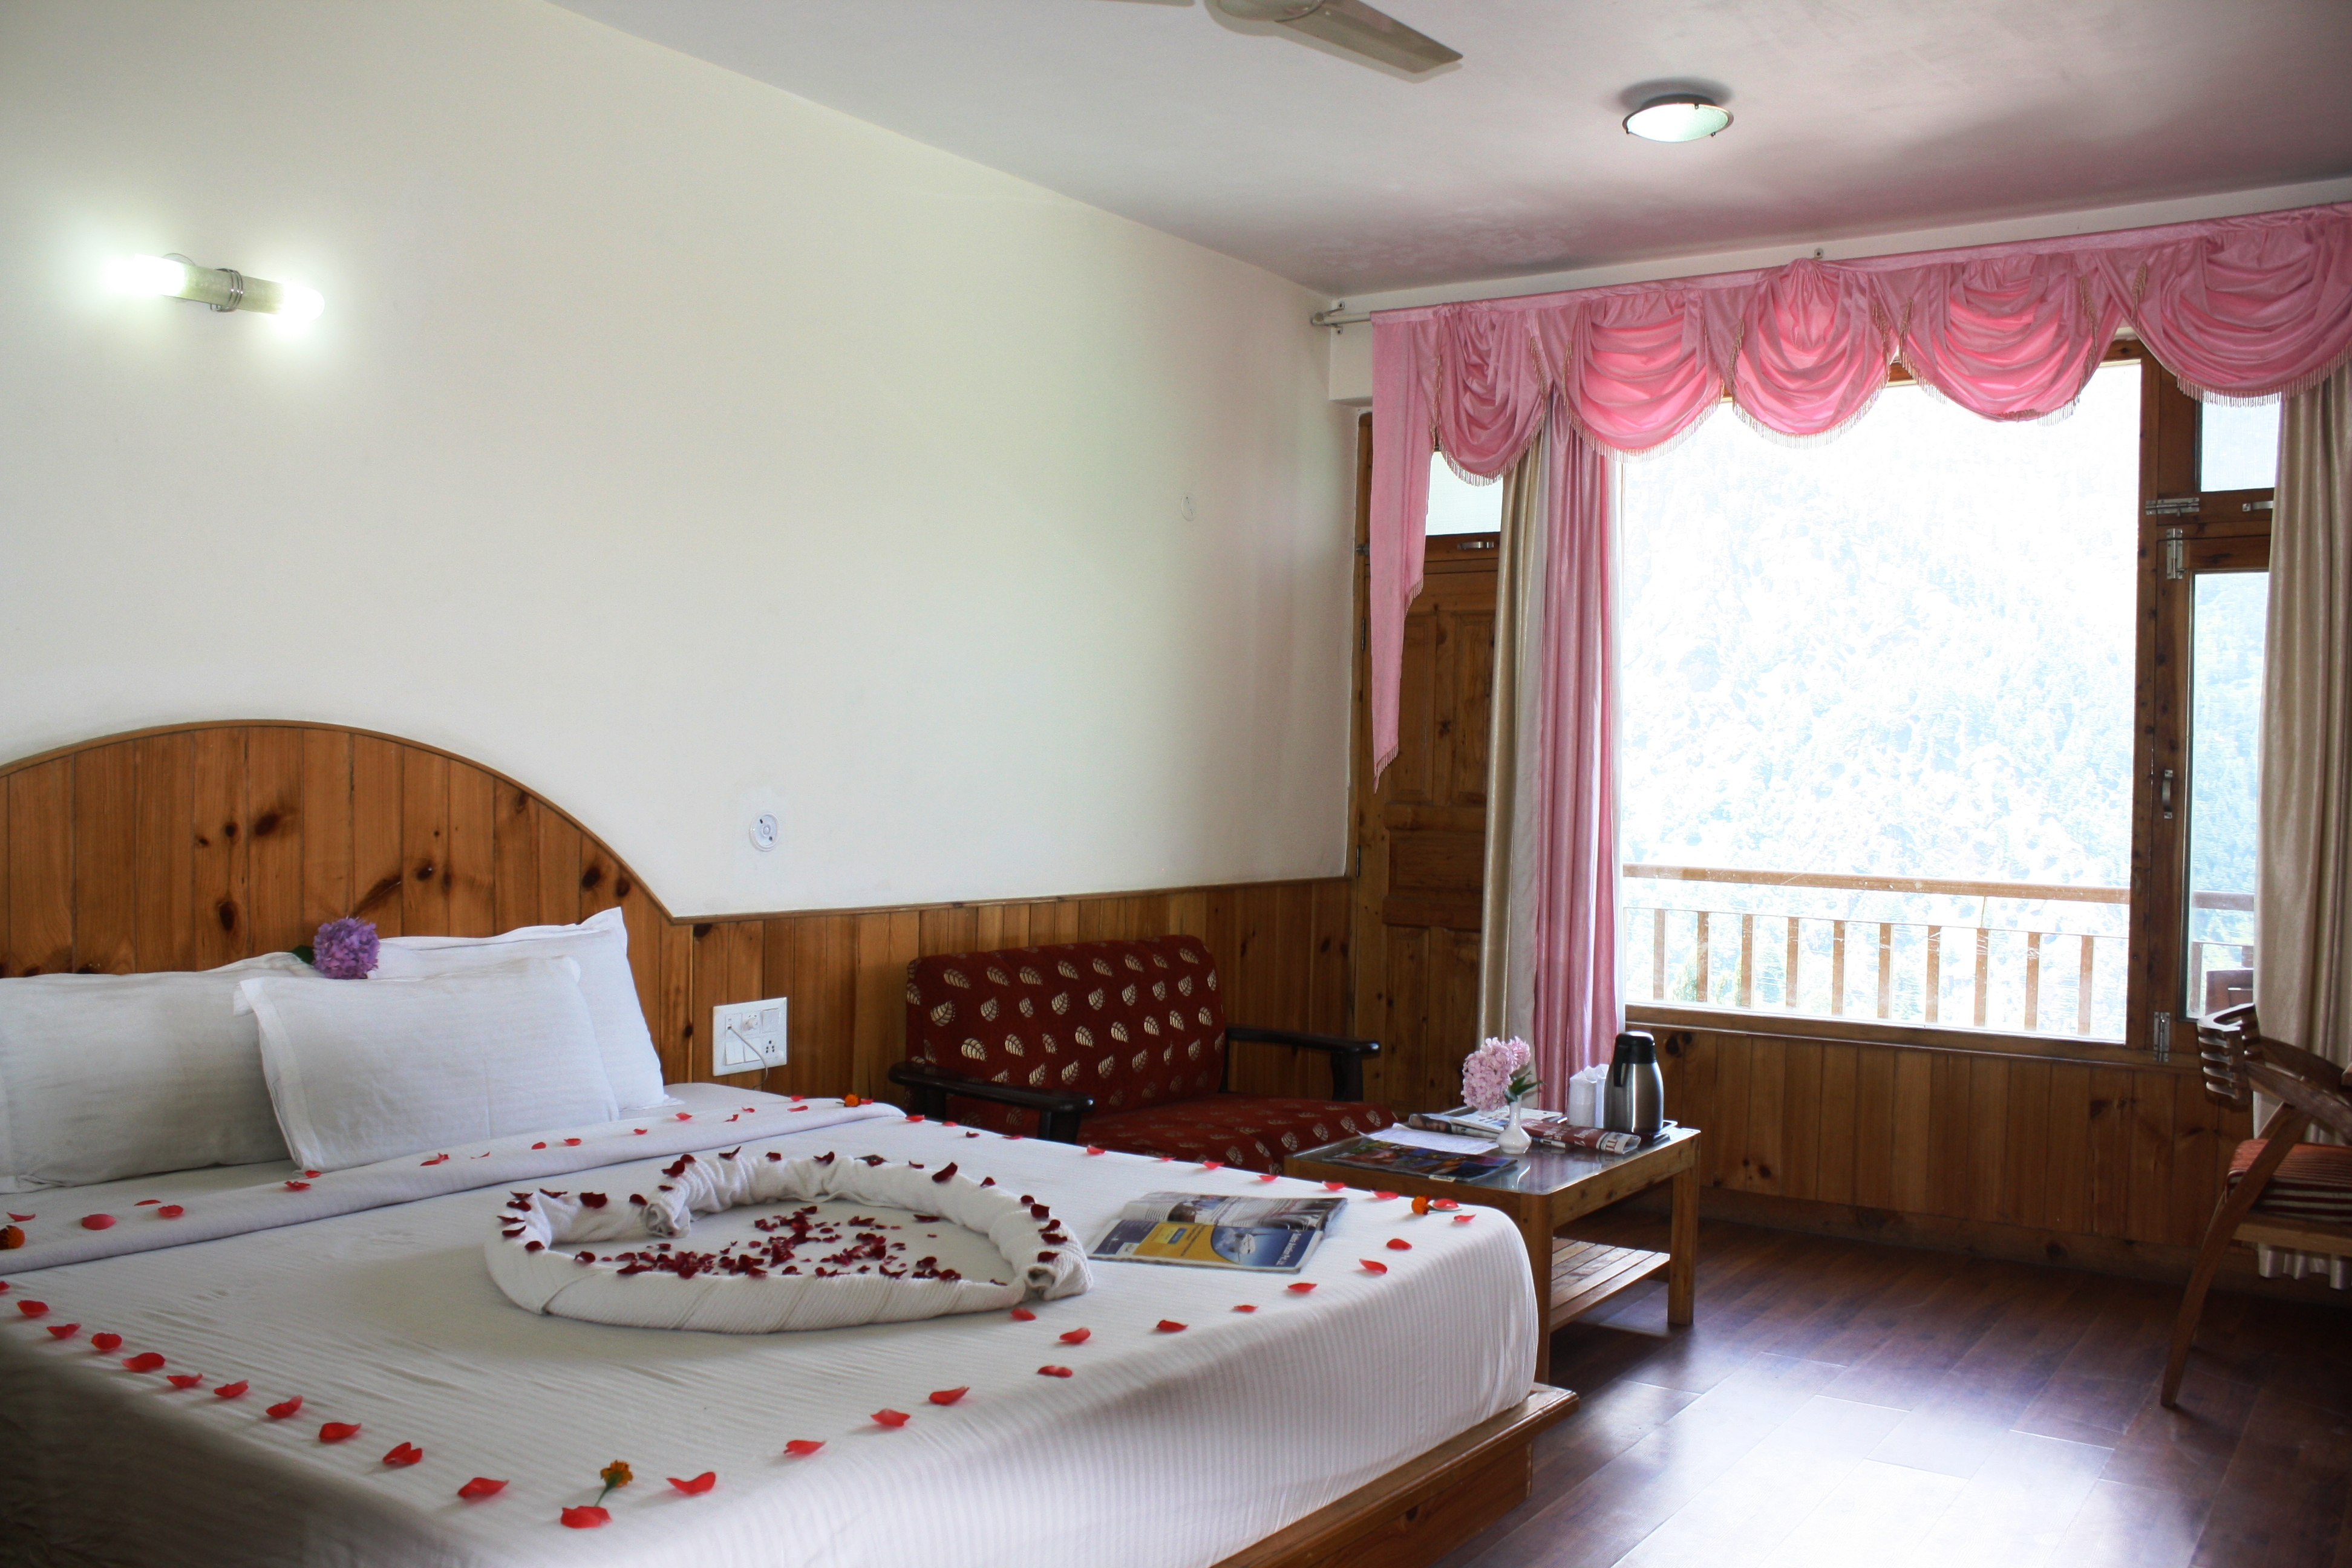 Super Deluxe Valley View MAP), SARTHAK RESORTS KHAKHNAL( MANALI) - Budget Hotels in Manali